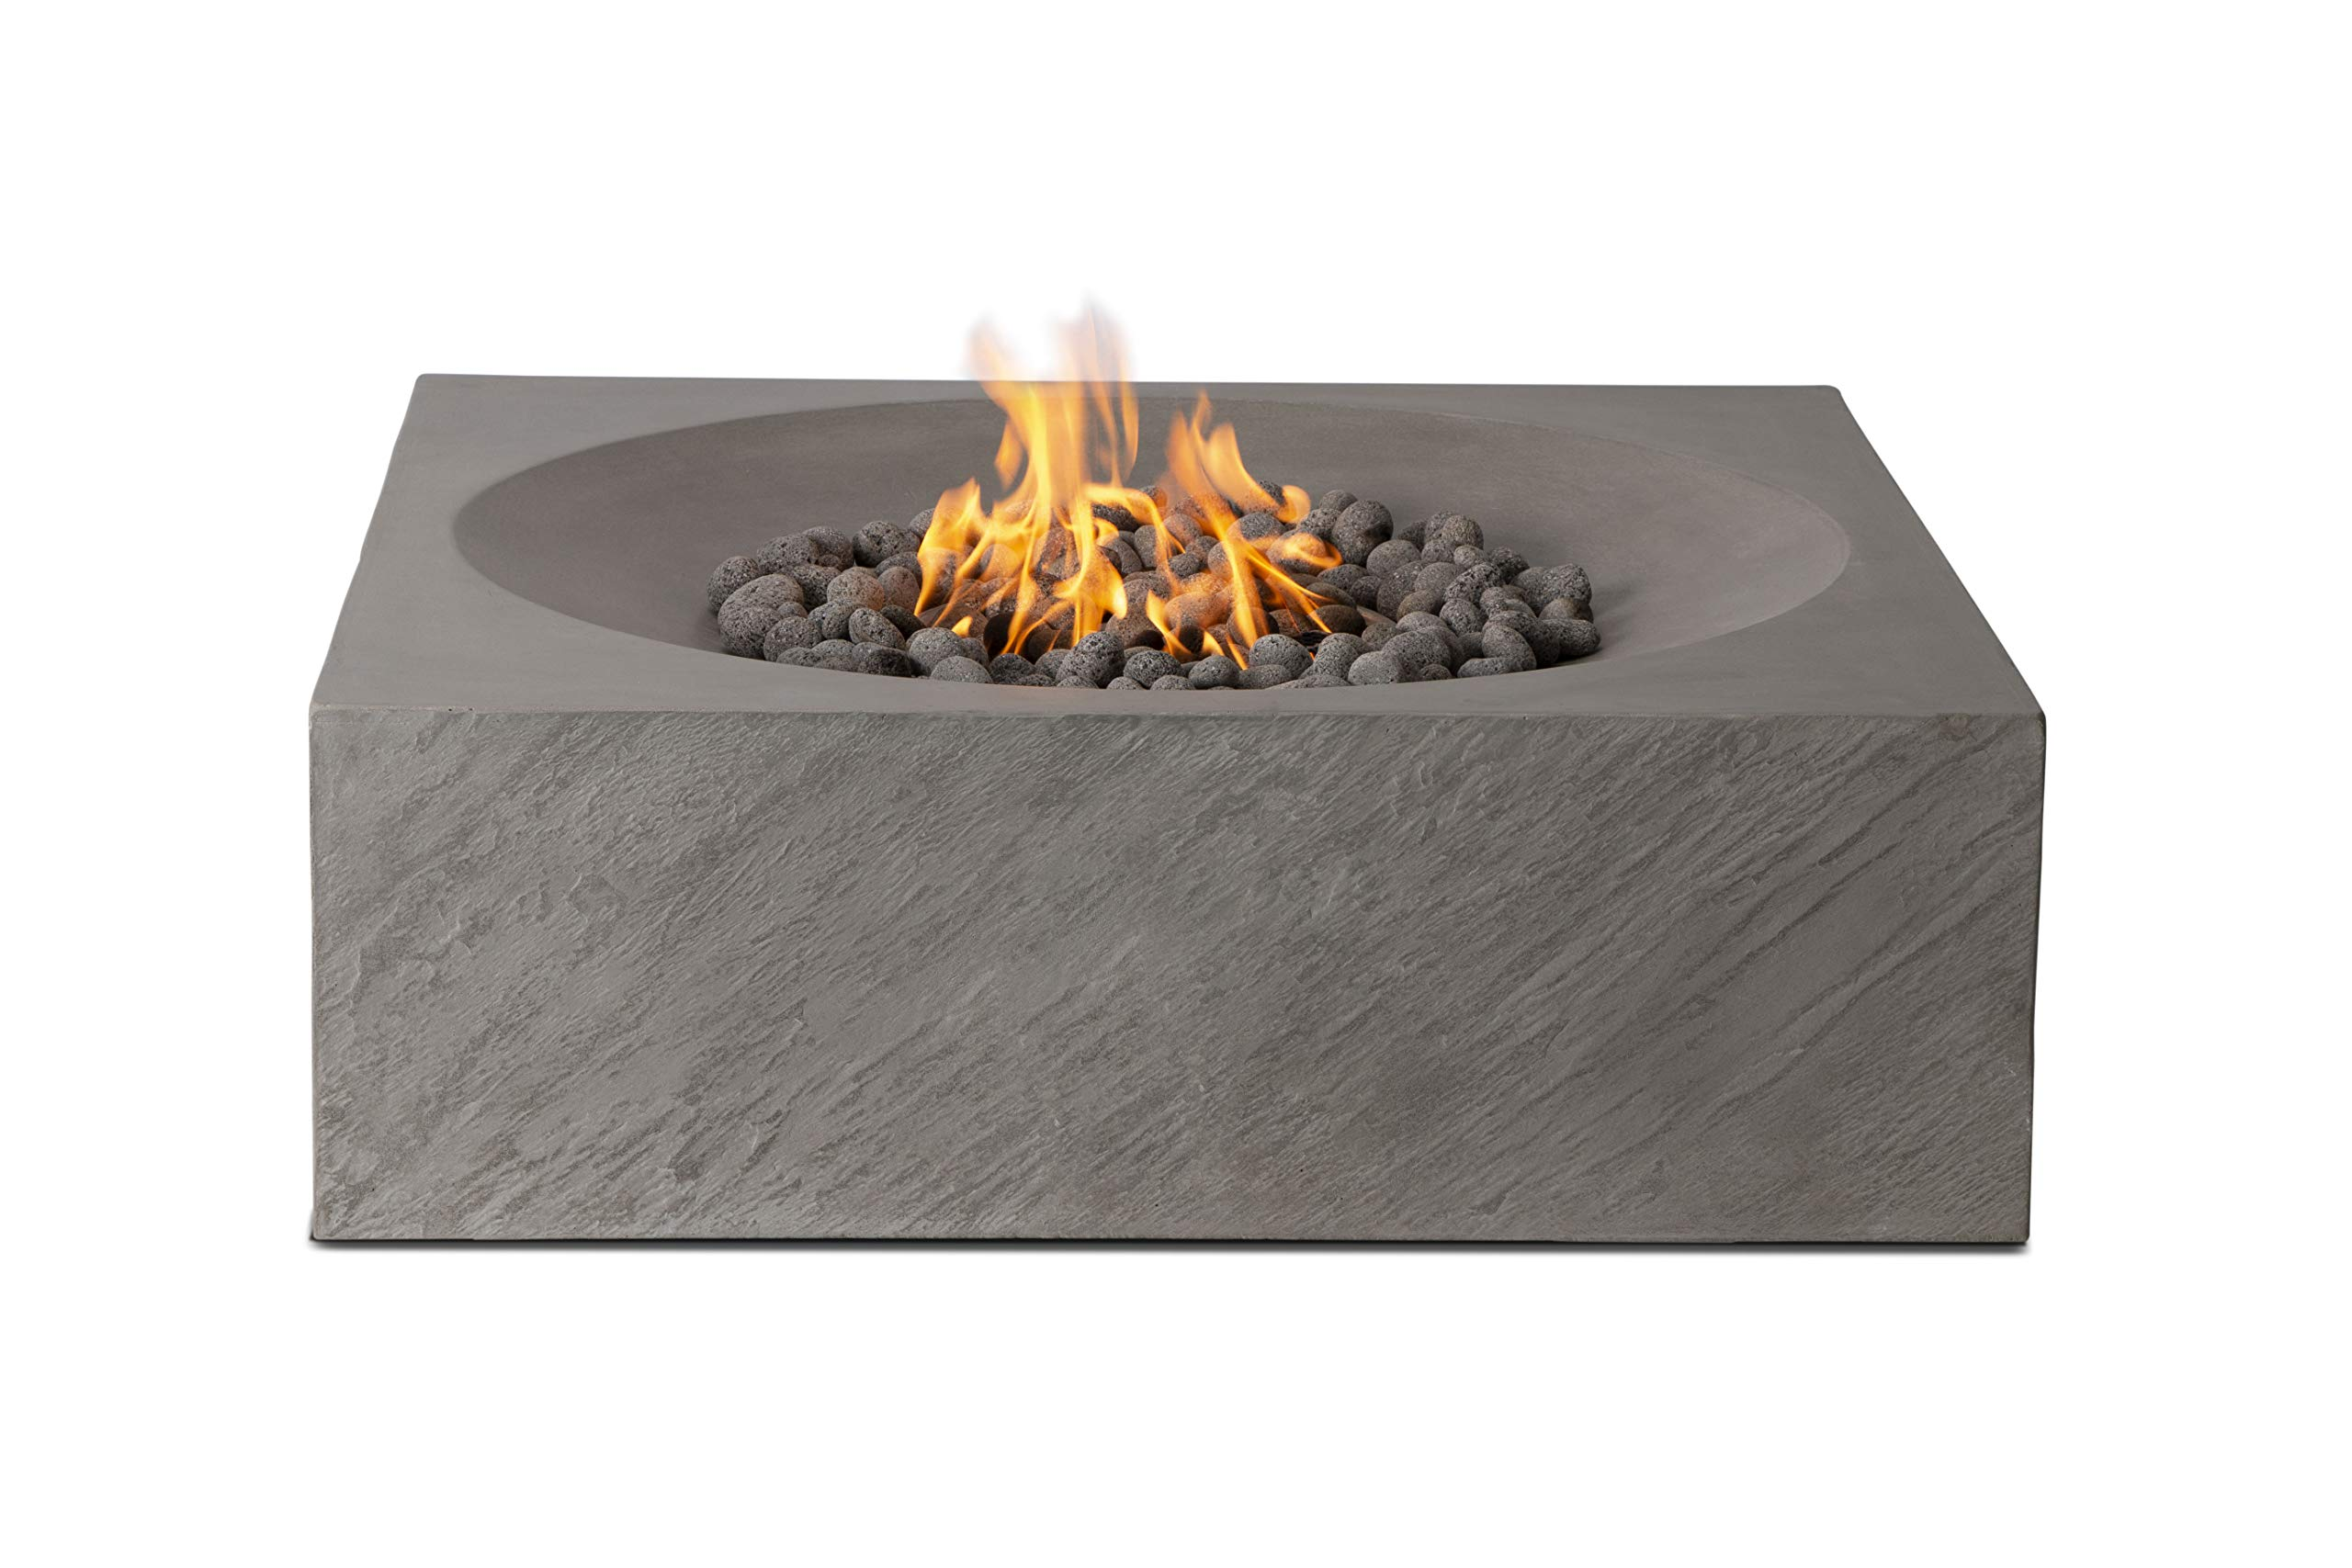 Pyromania Paloma Outdoor Fire Pit Table. Hand Crafted from Concrete. 60,000 BTU Stainless Steel Burner with Electronic Ignition - Natural Gas Model, Slate Color (Lava Rock Included) by Pyromania